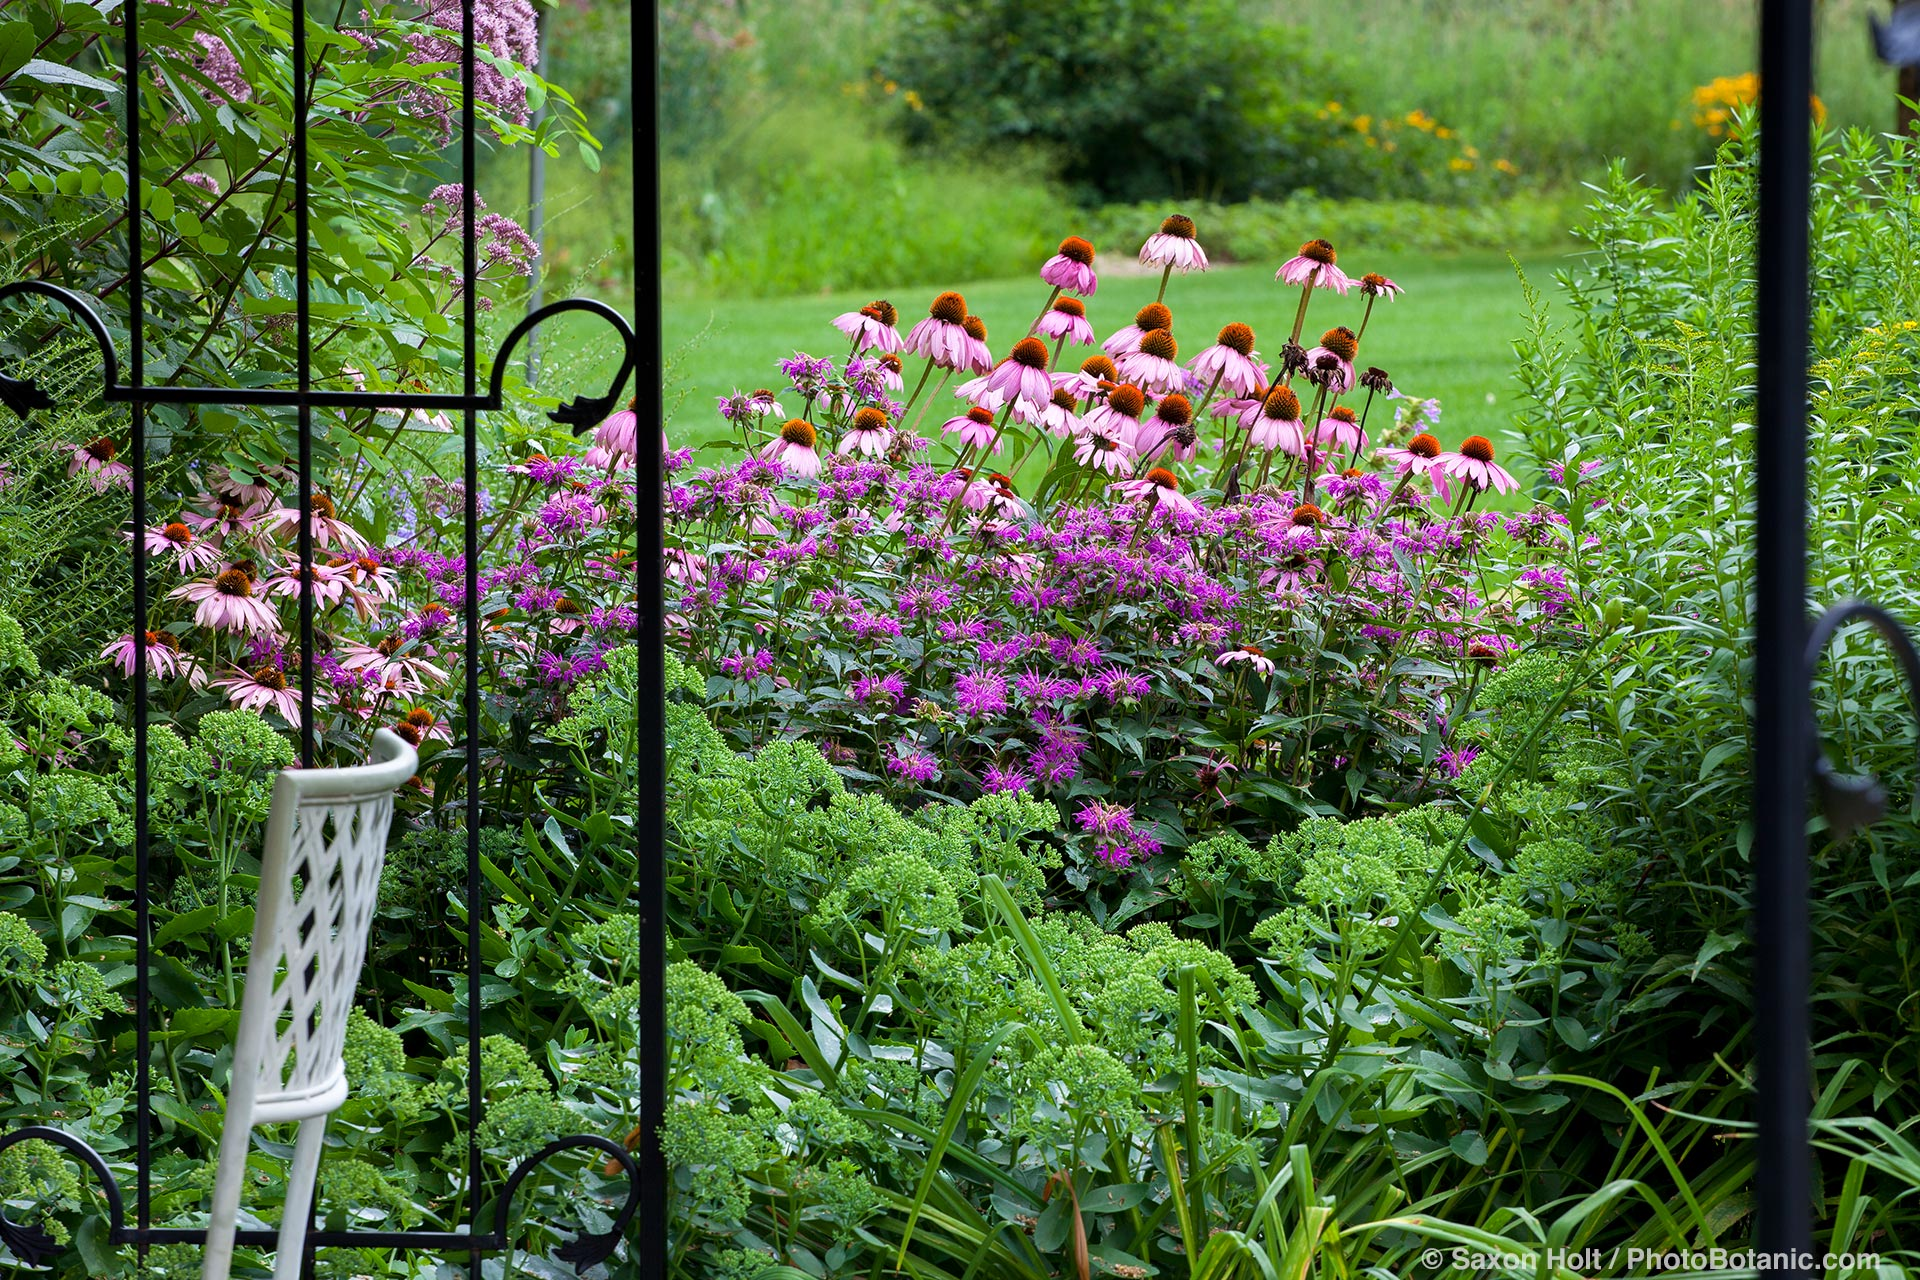 View of summer perennial border garden with Purple Cone Flower (Echinacea), Bee Balm (Monarda), and Sedum seen through iron gates,  Willenberg garden